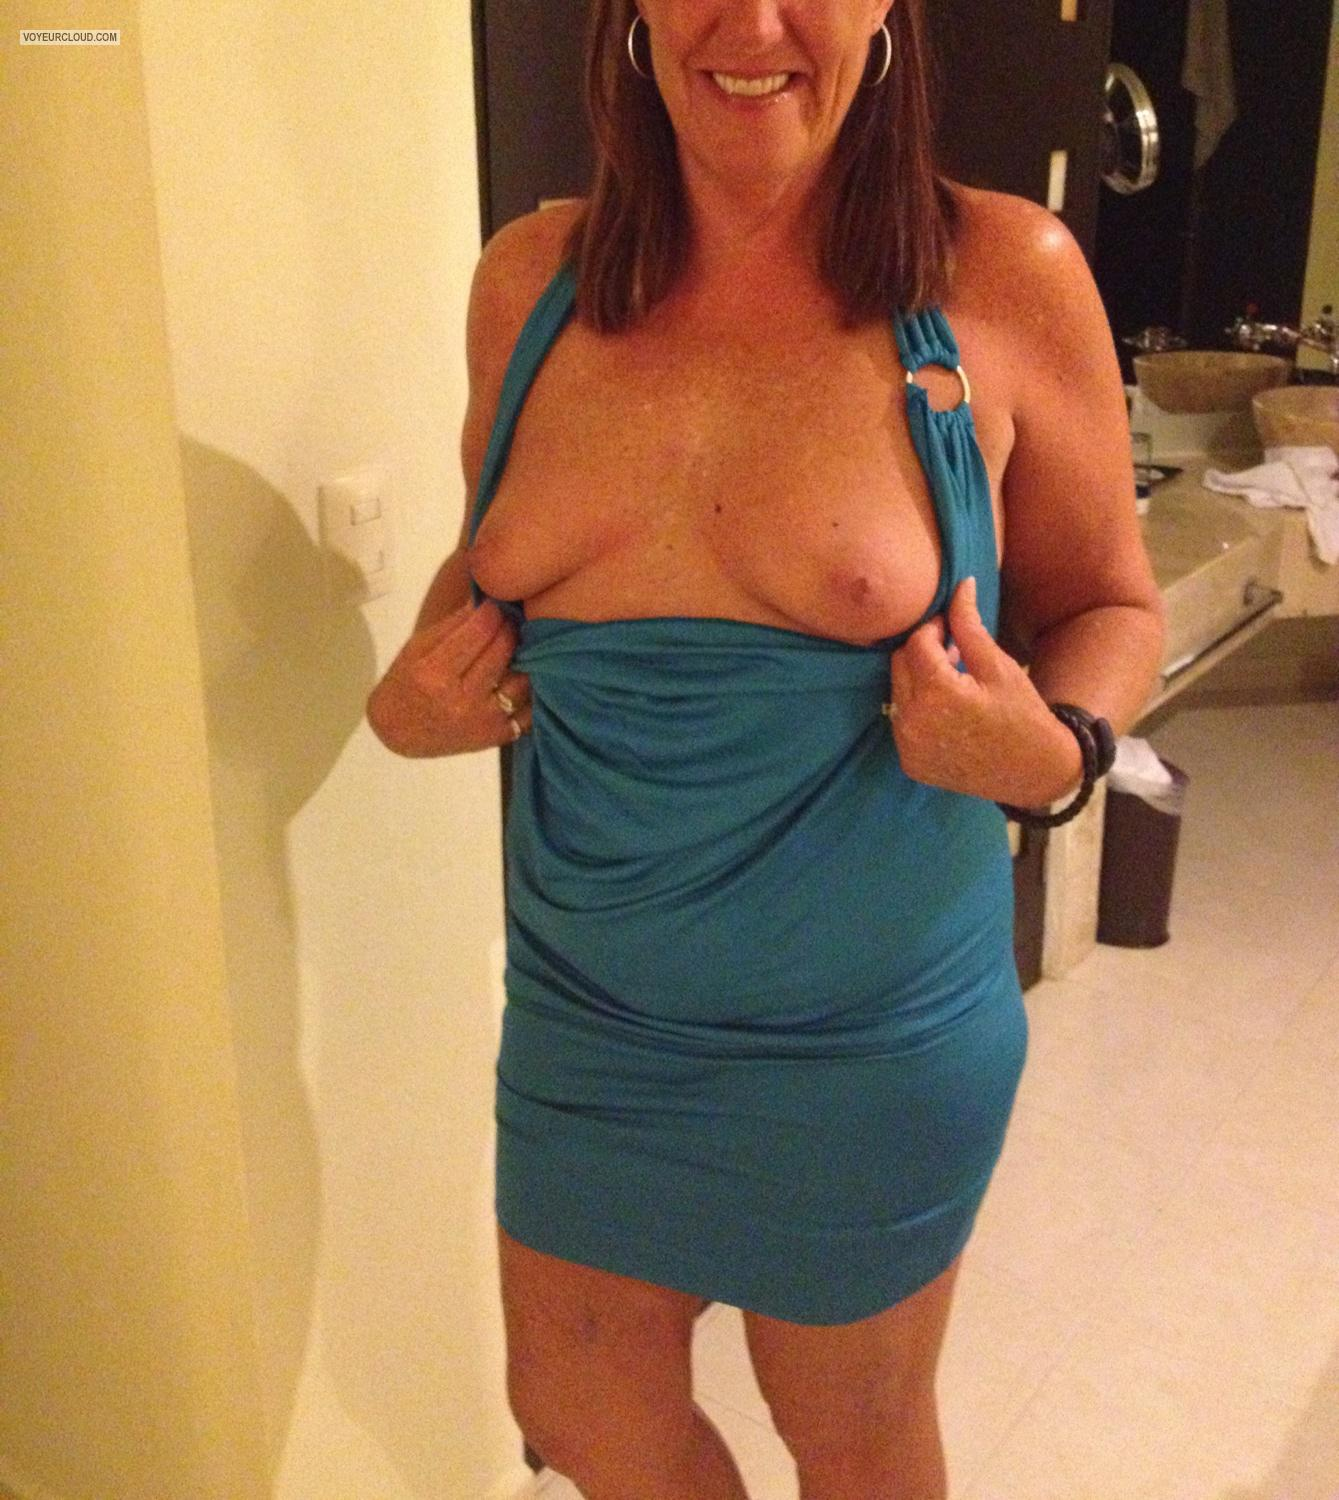 Tit Flash: Small Tits By IPhone - Txwife from United States